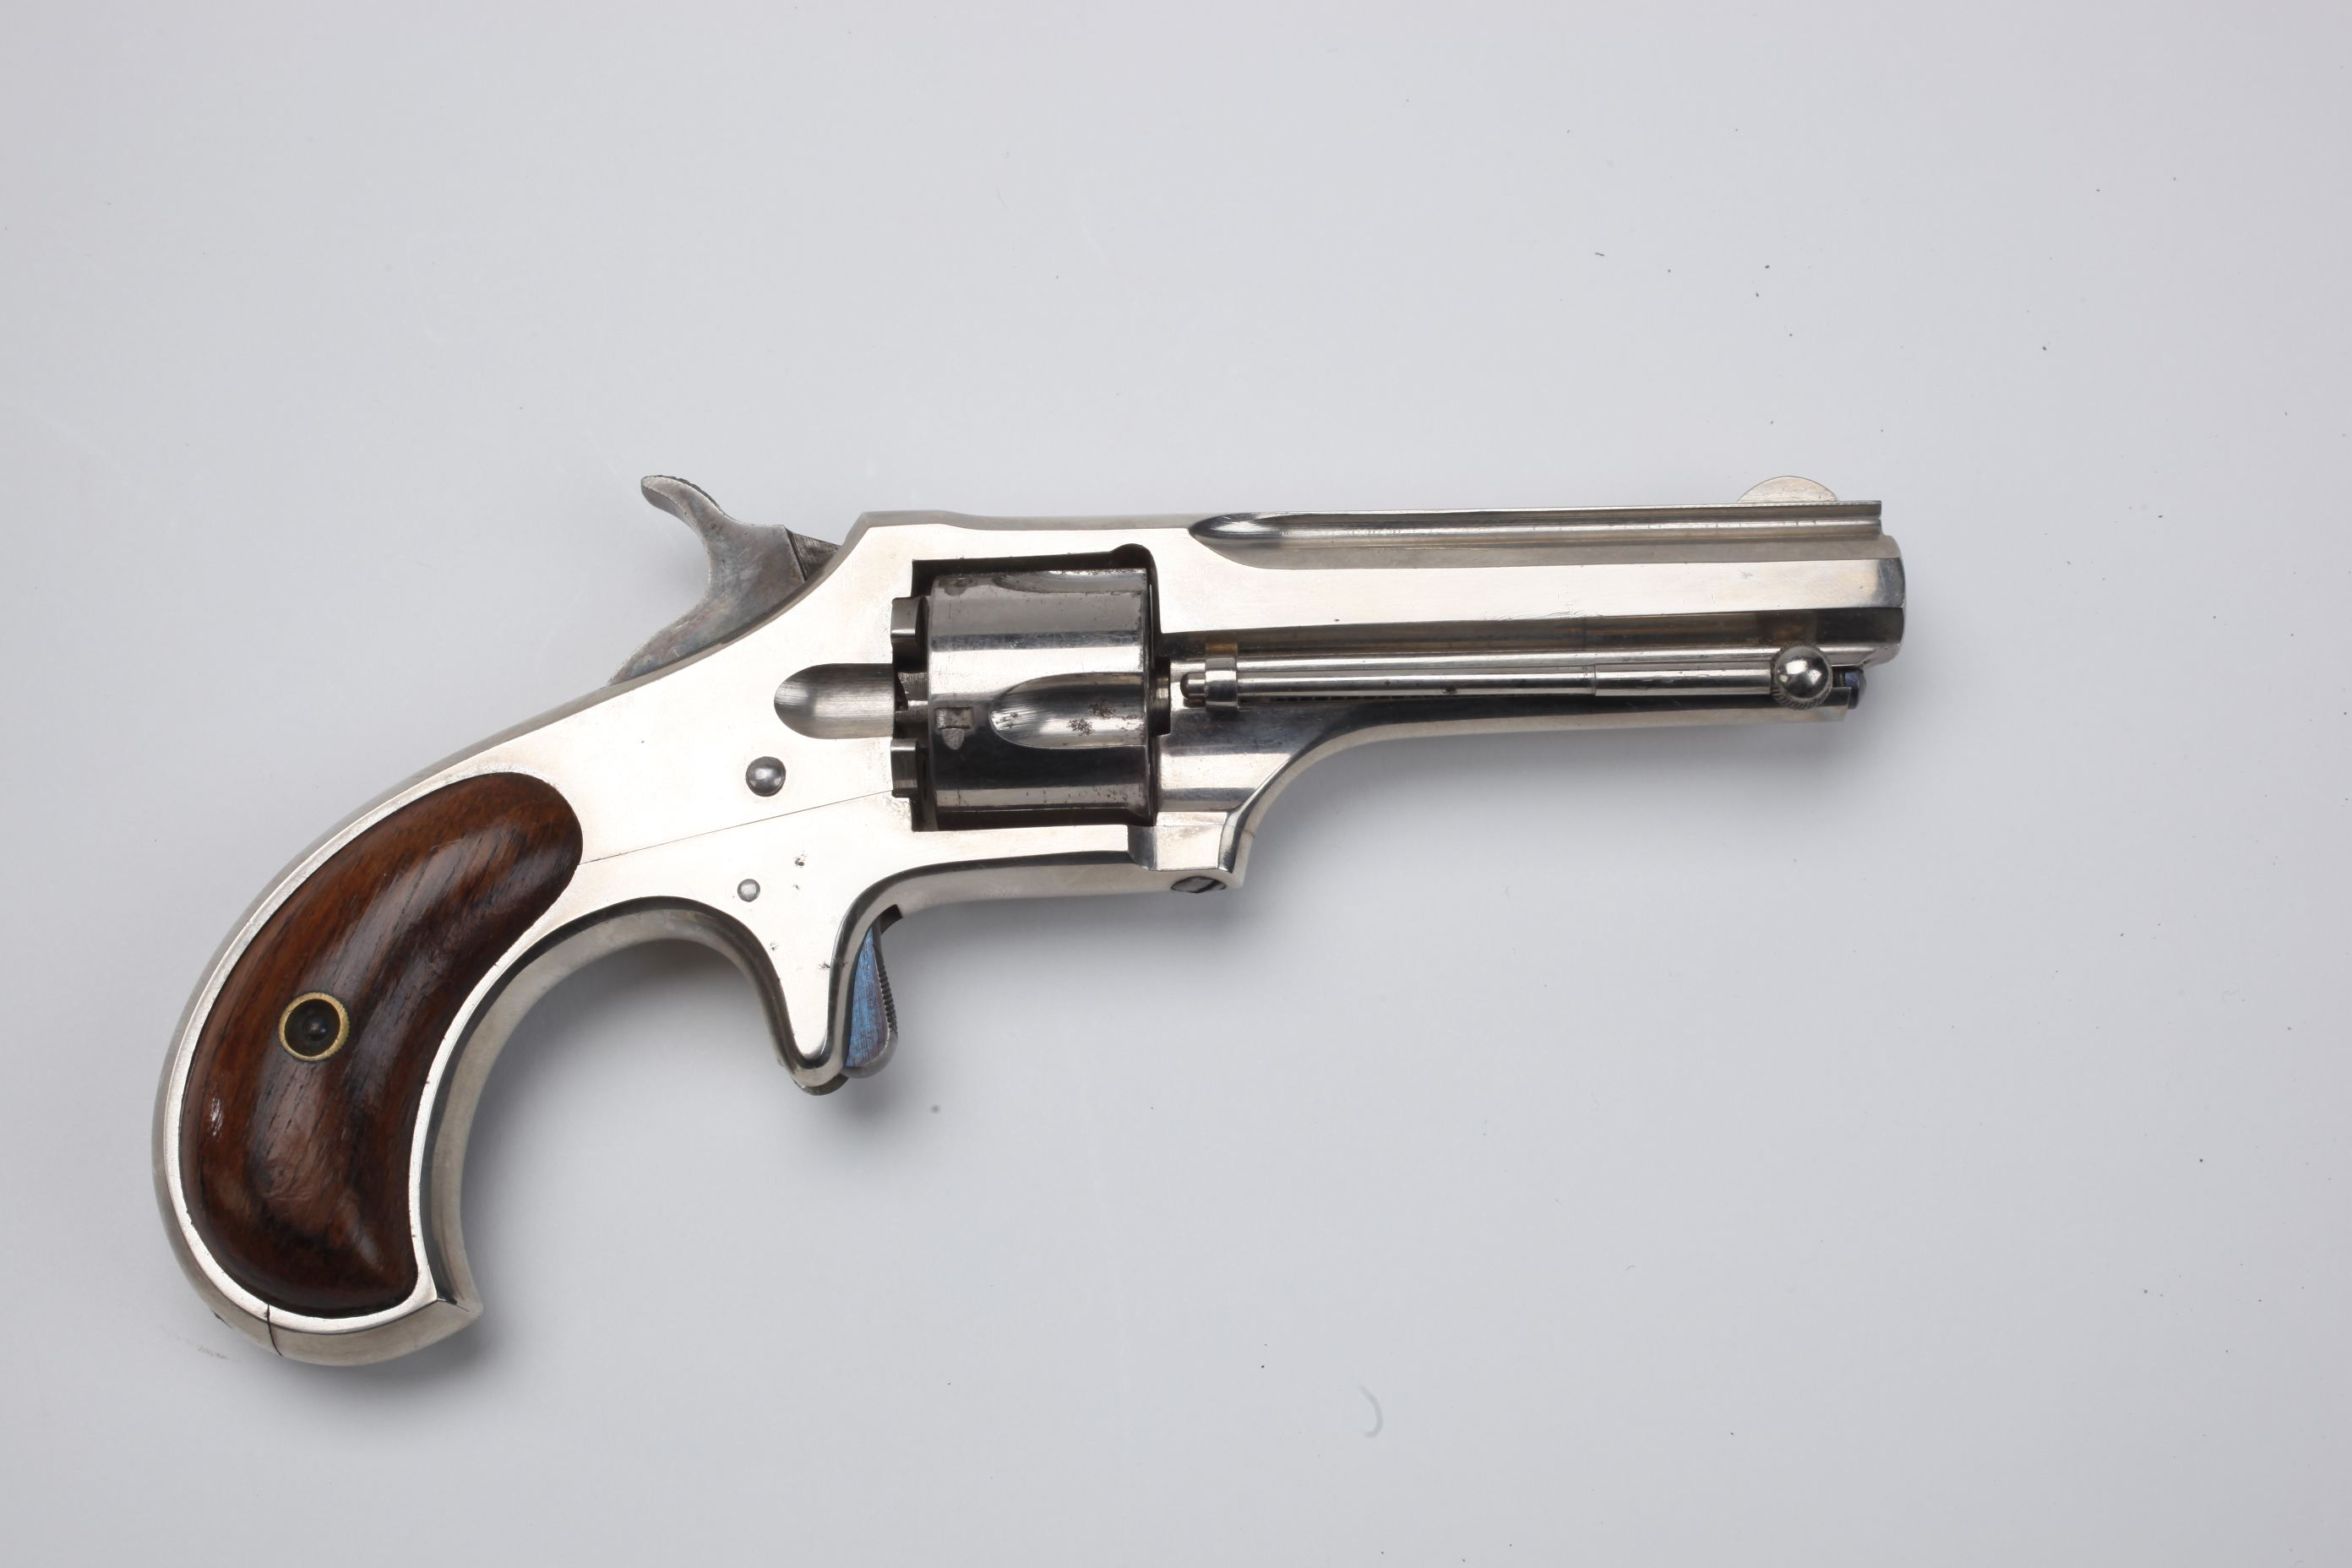 Remington Smoot New Model No 1 revolver